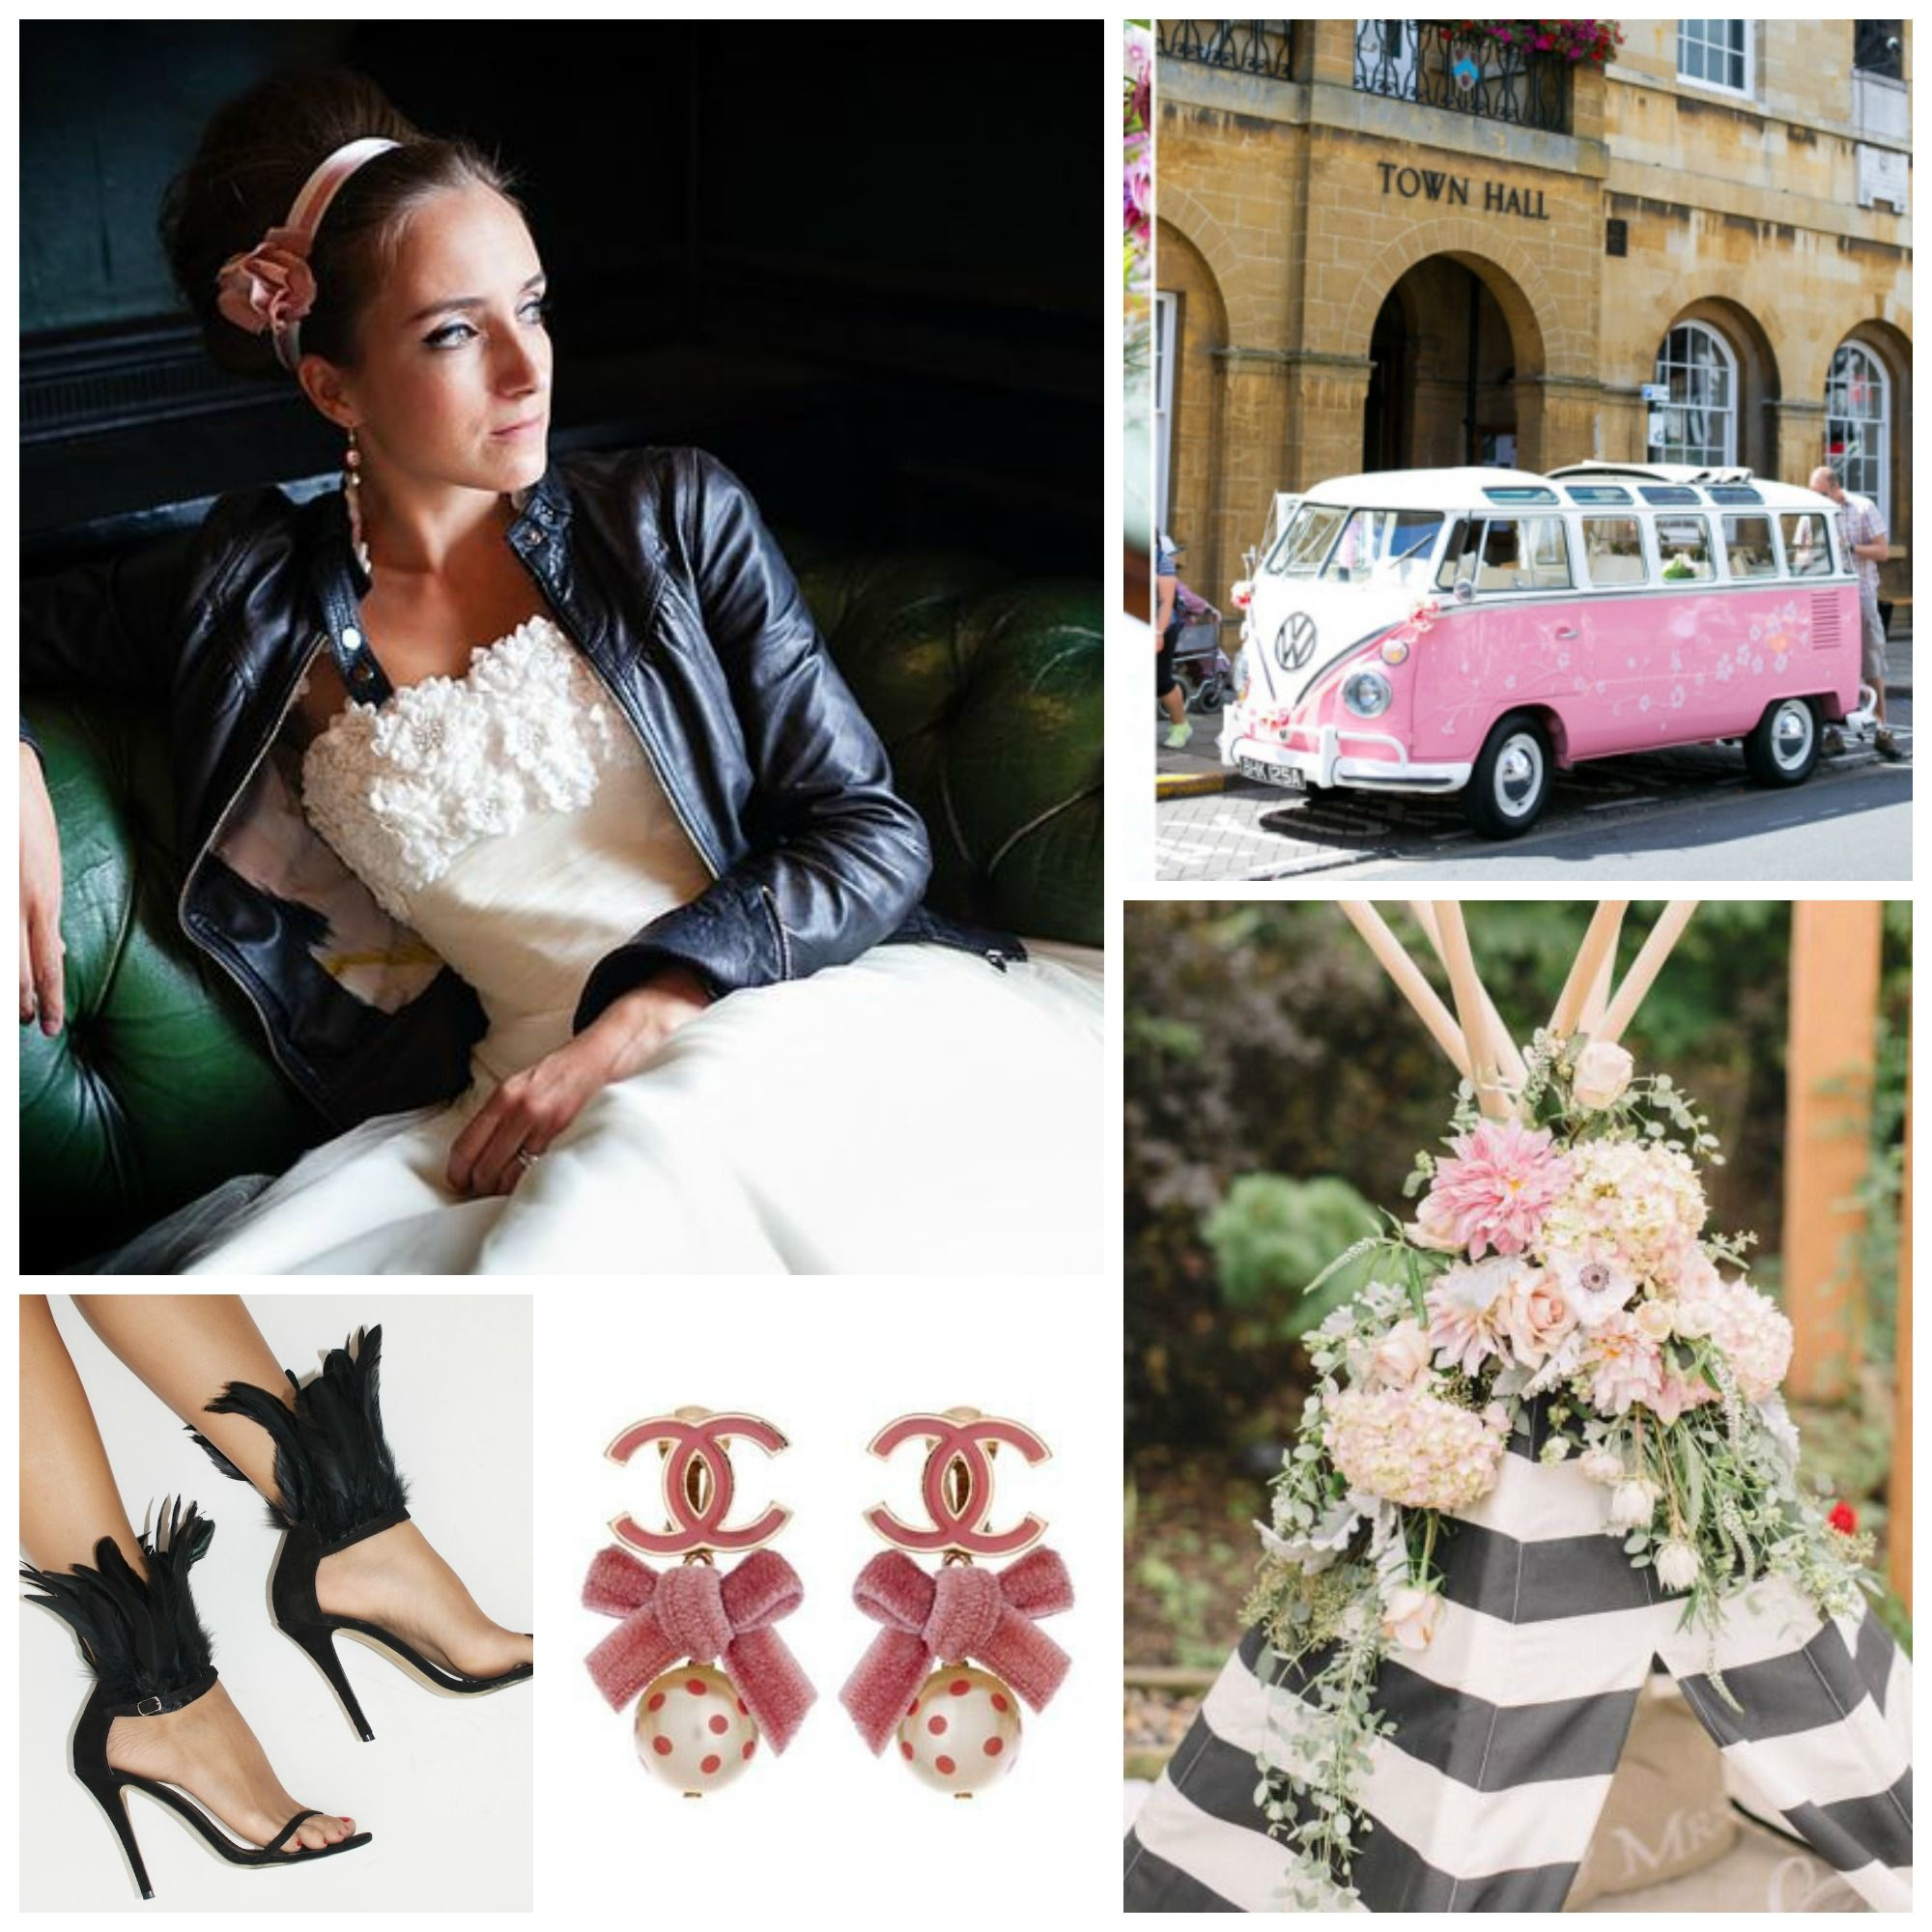 Pink dress and jacket for wedding  Sassi Holford wedding gown Pink Black and you wedding Black